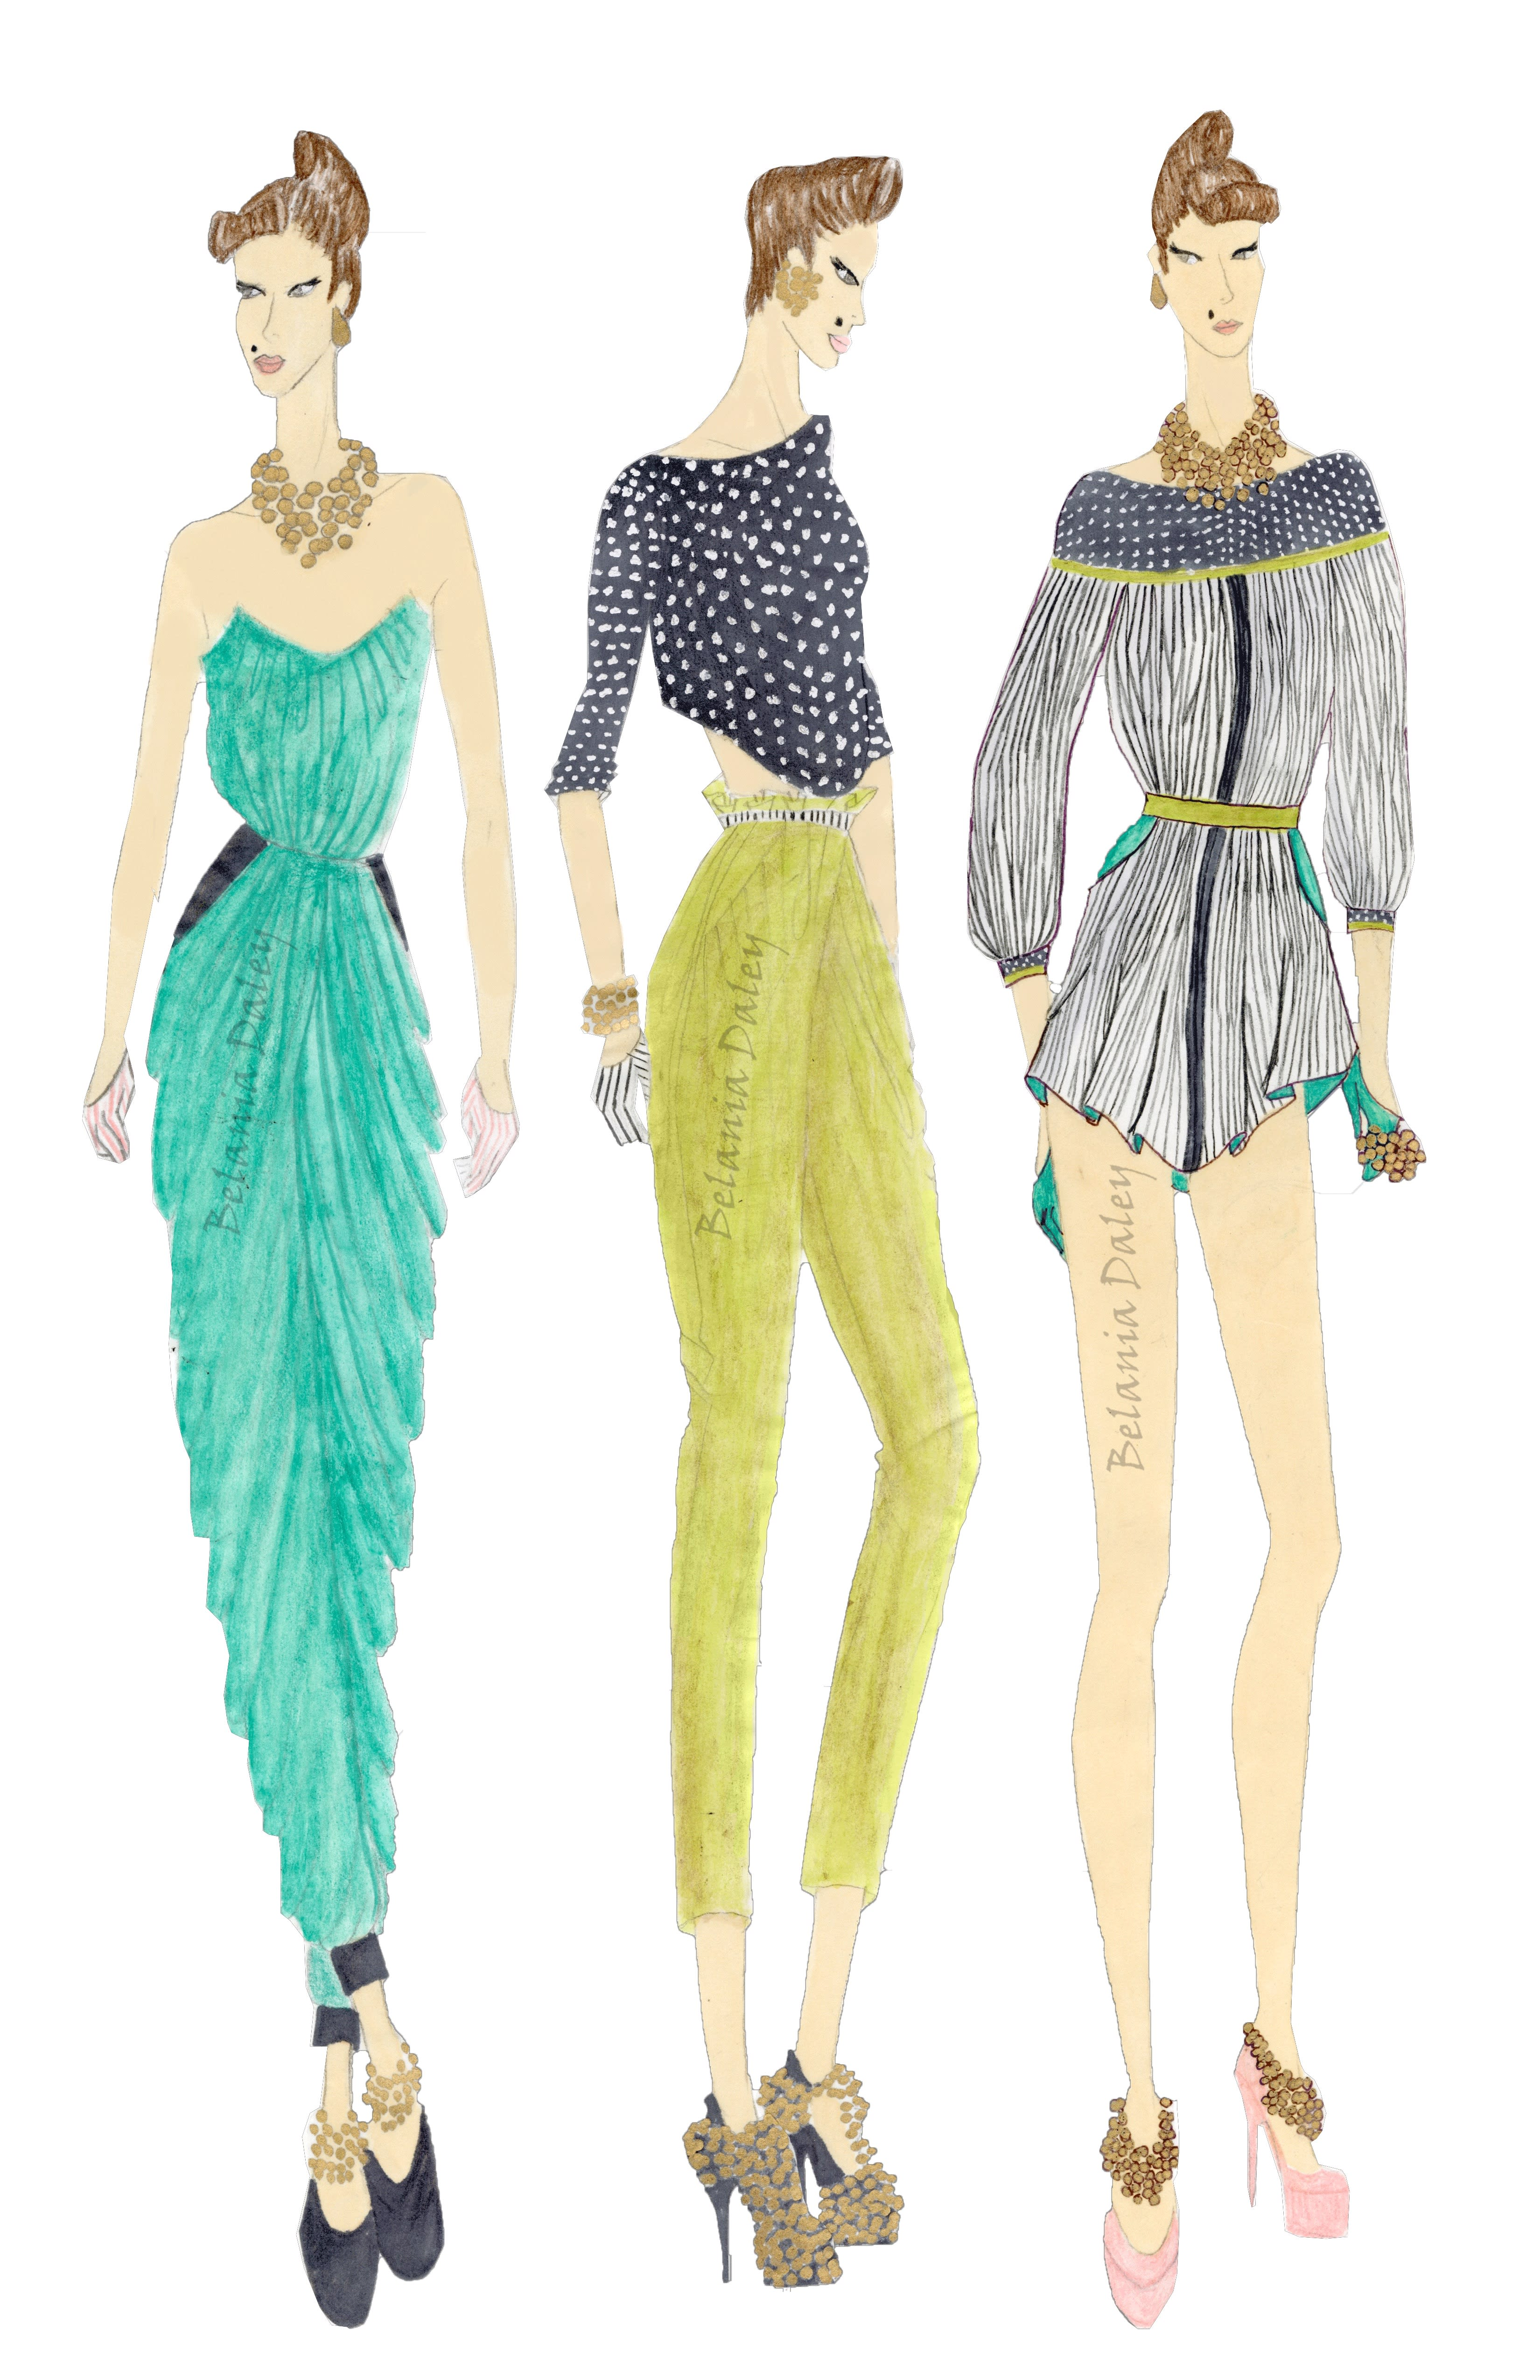 Sketch Fashion Illustrations For Design Development By Belaniadaley